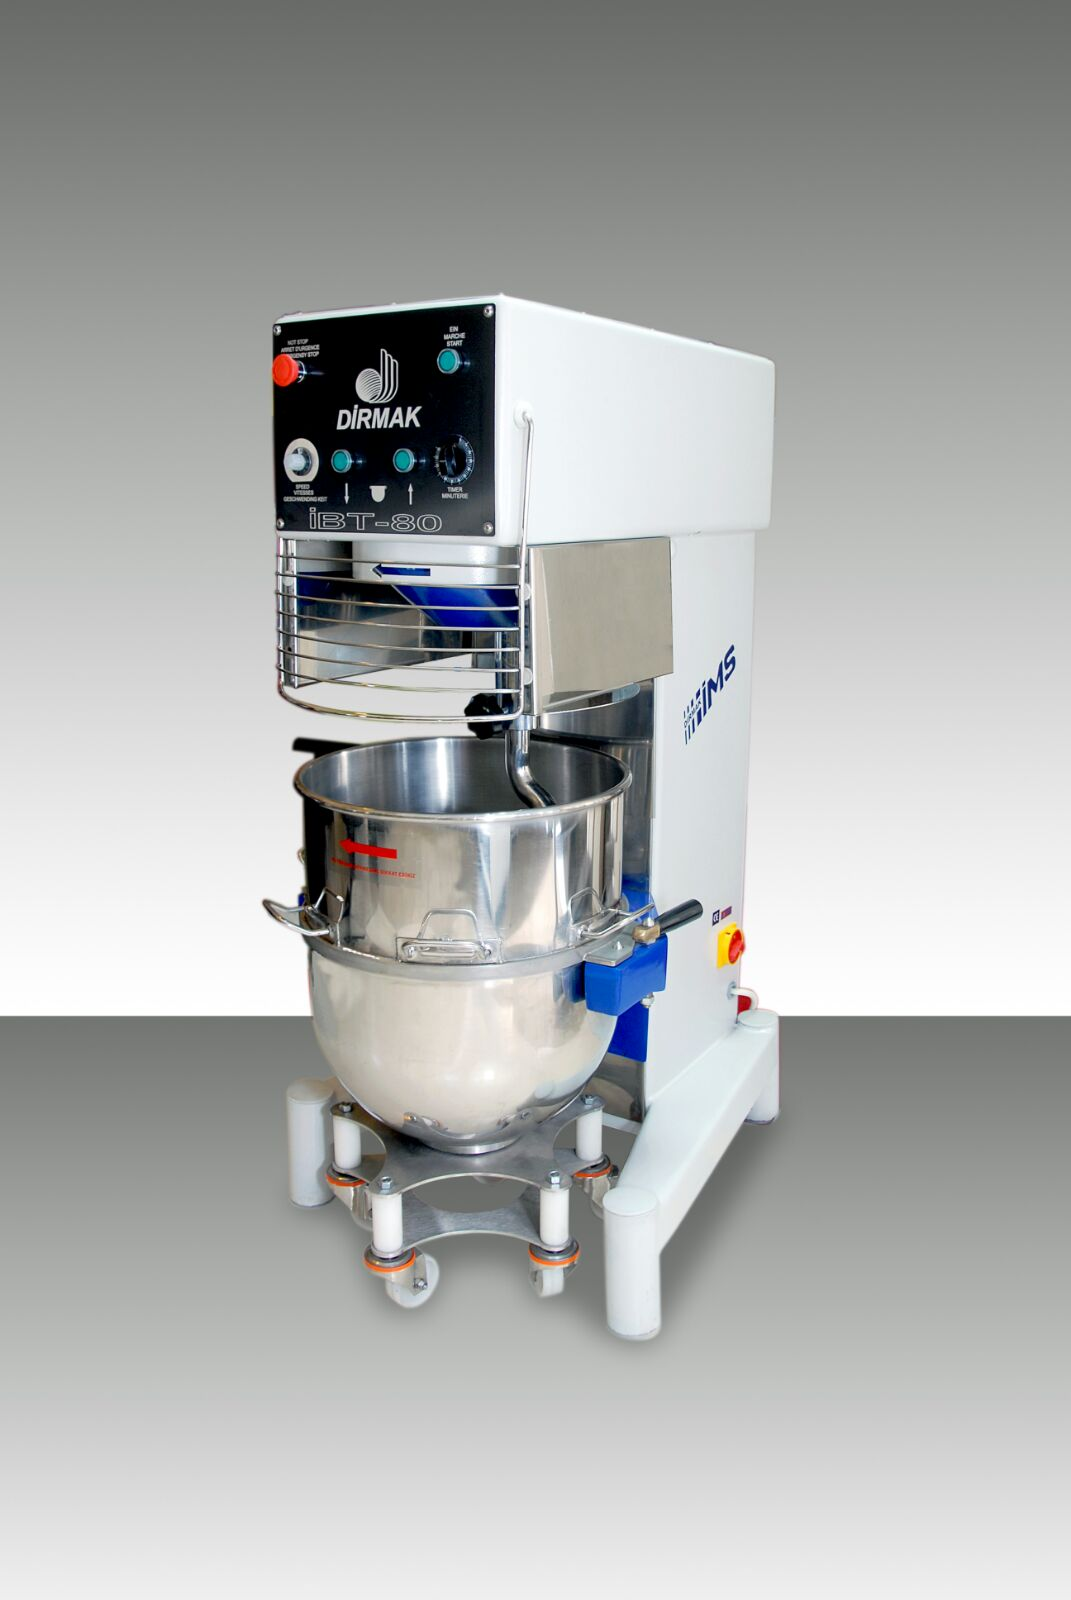 Withpowerful engine and 80 liter bowl, IBT 80 Seri